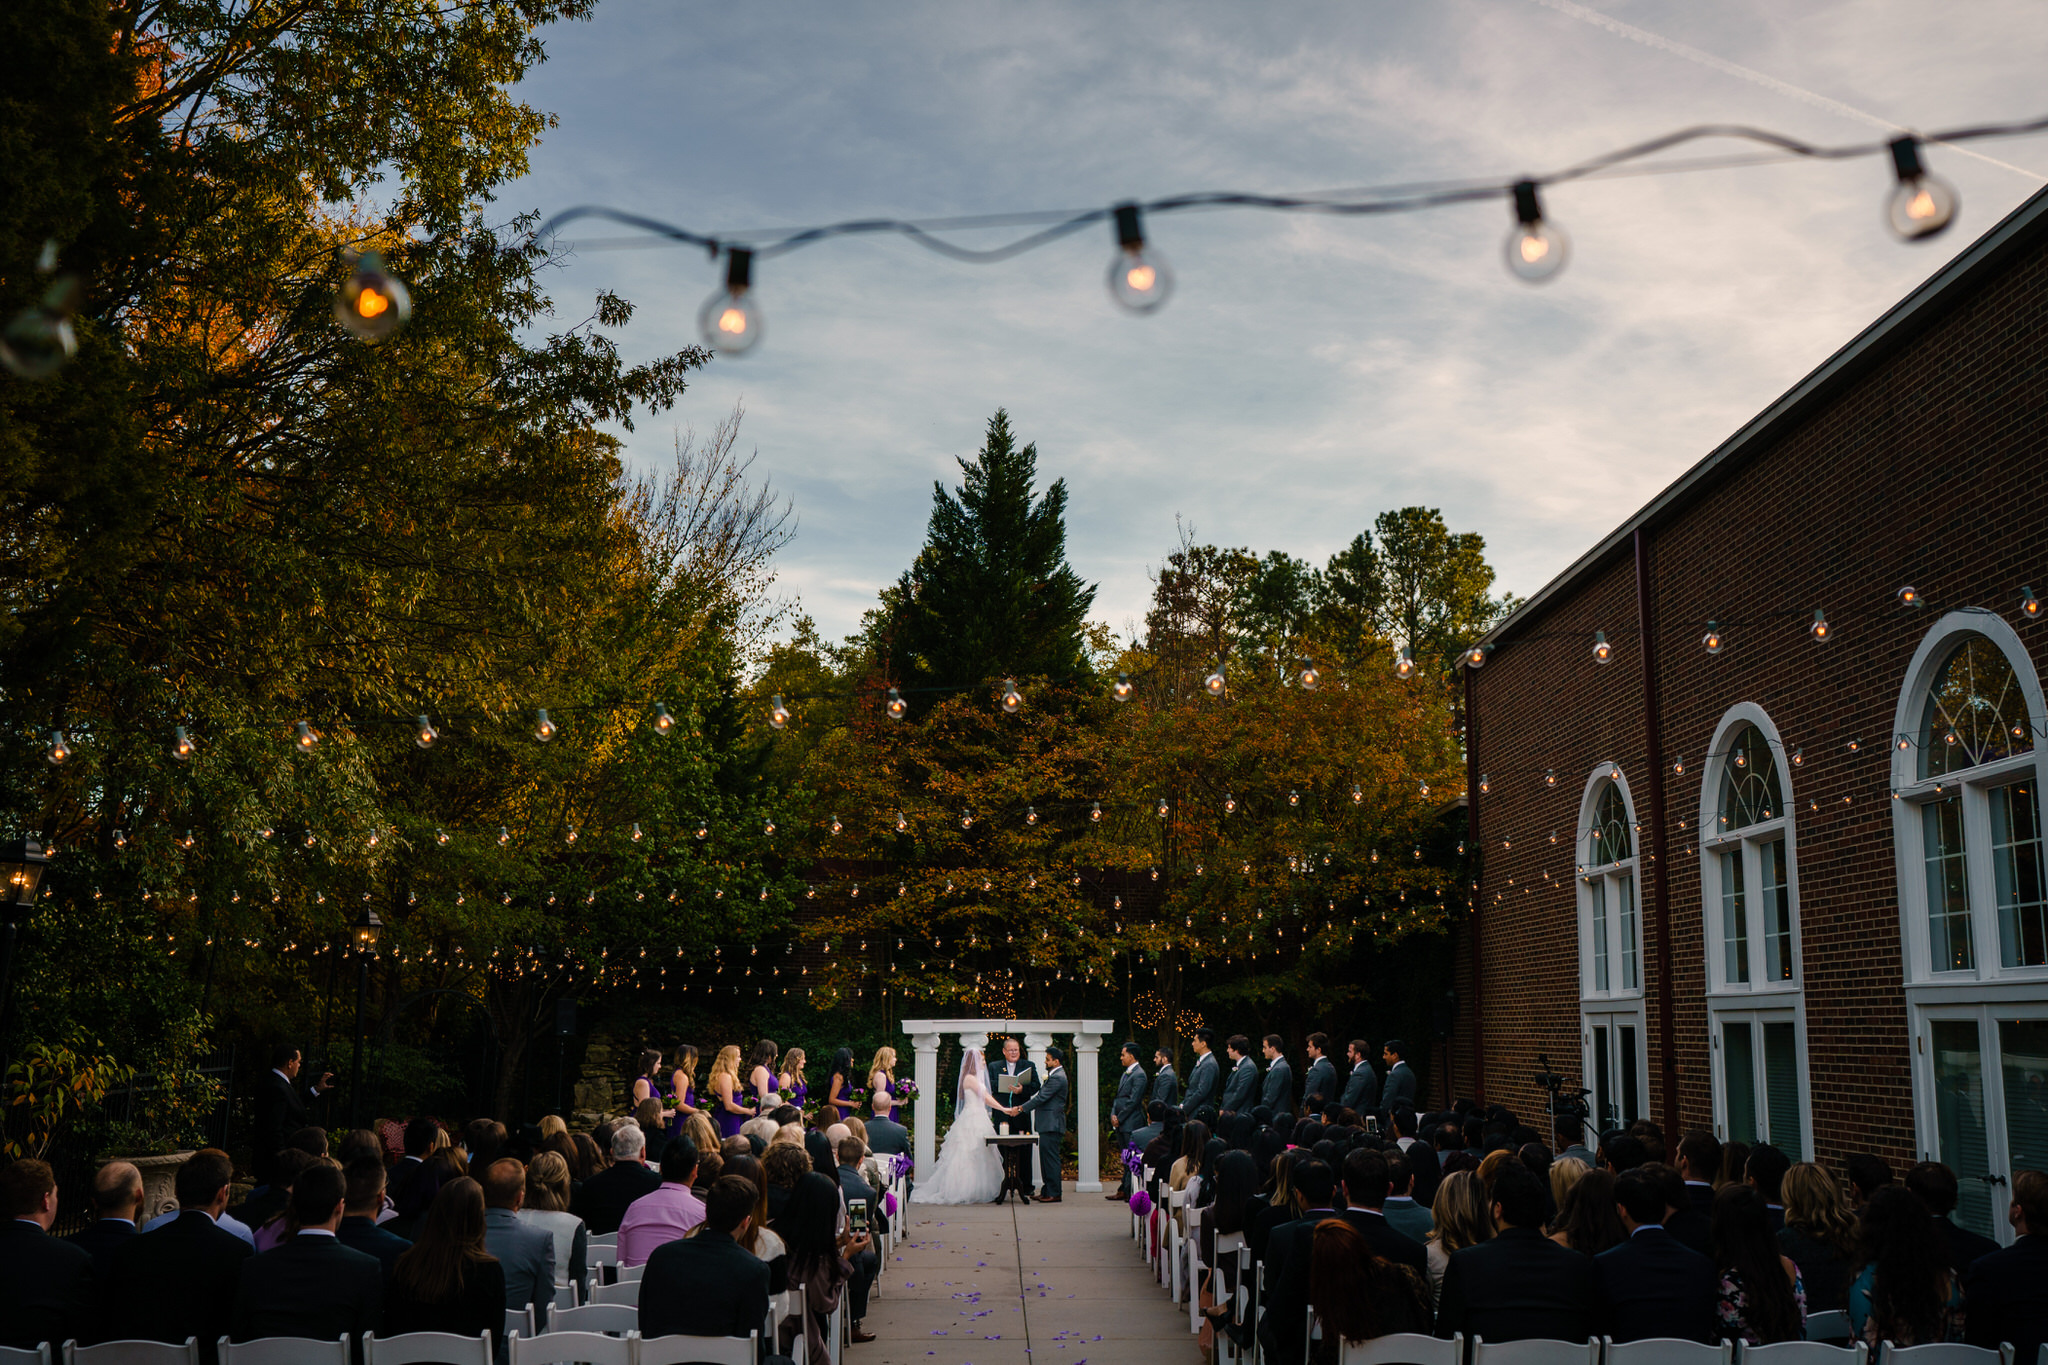 Rachel-Sagar-Garden-on-Millbrook-Wedding-in-Raleigh-NC-016.jpg